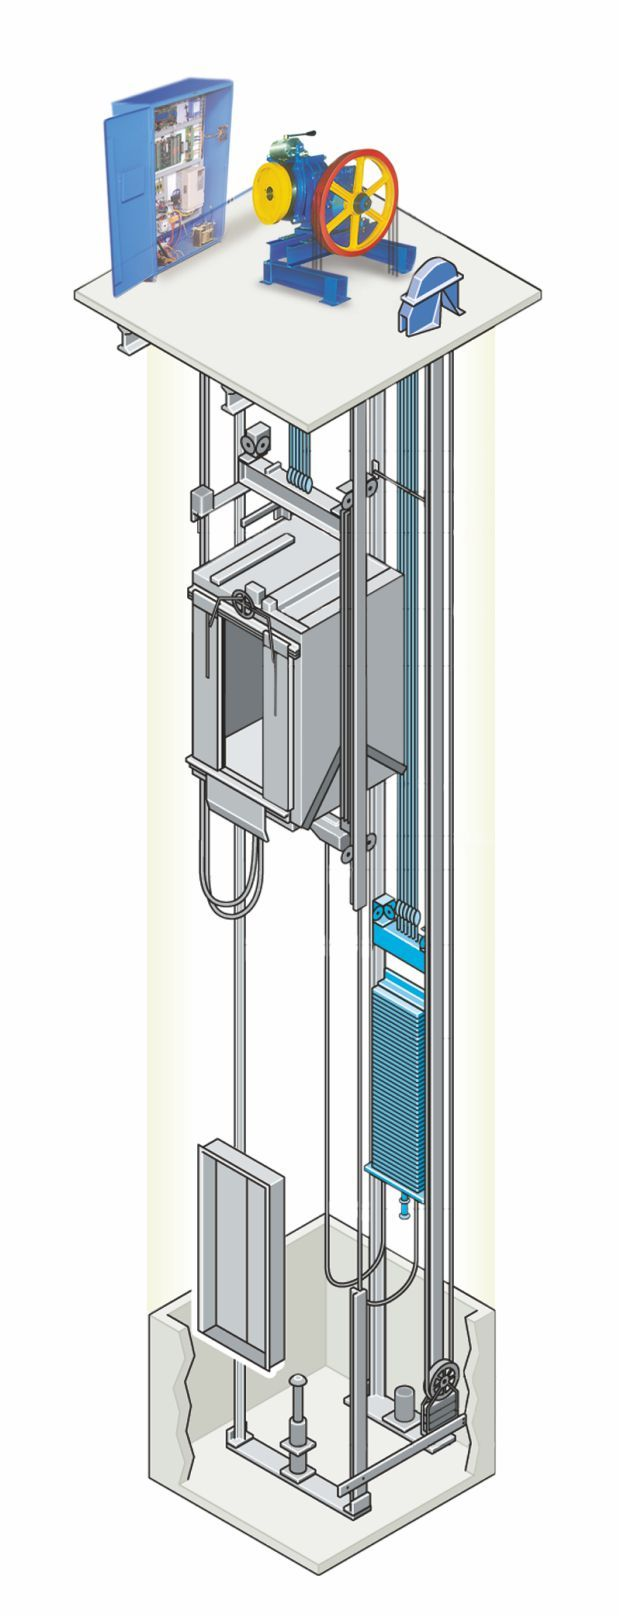 Diagram of Traction Elevator System